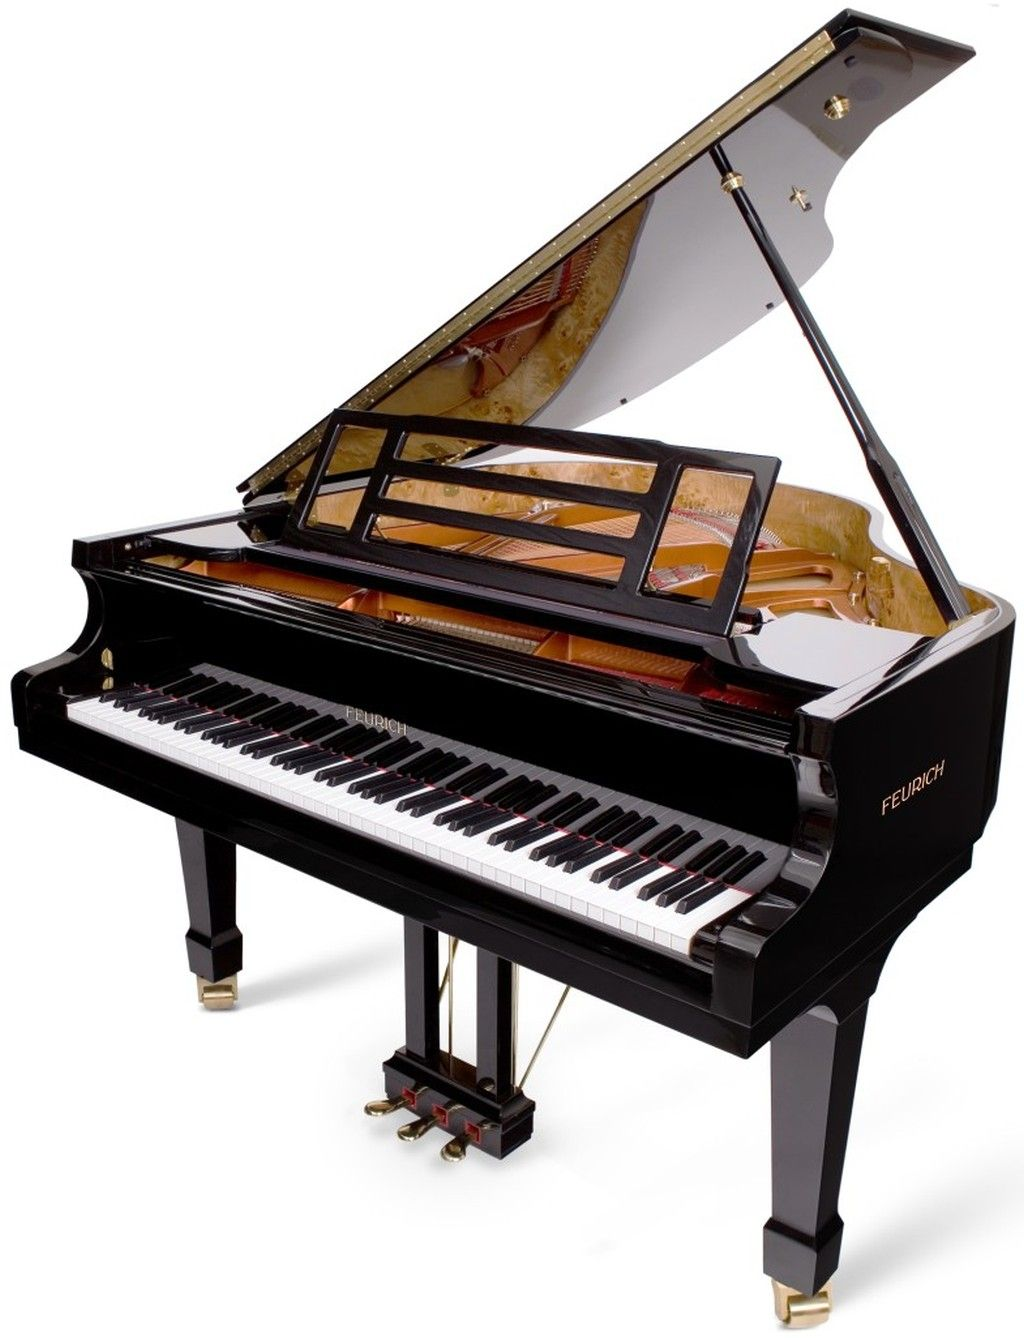 Feurich 161 professional grand piano black with brass or for How big is a grand piano